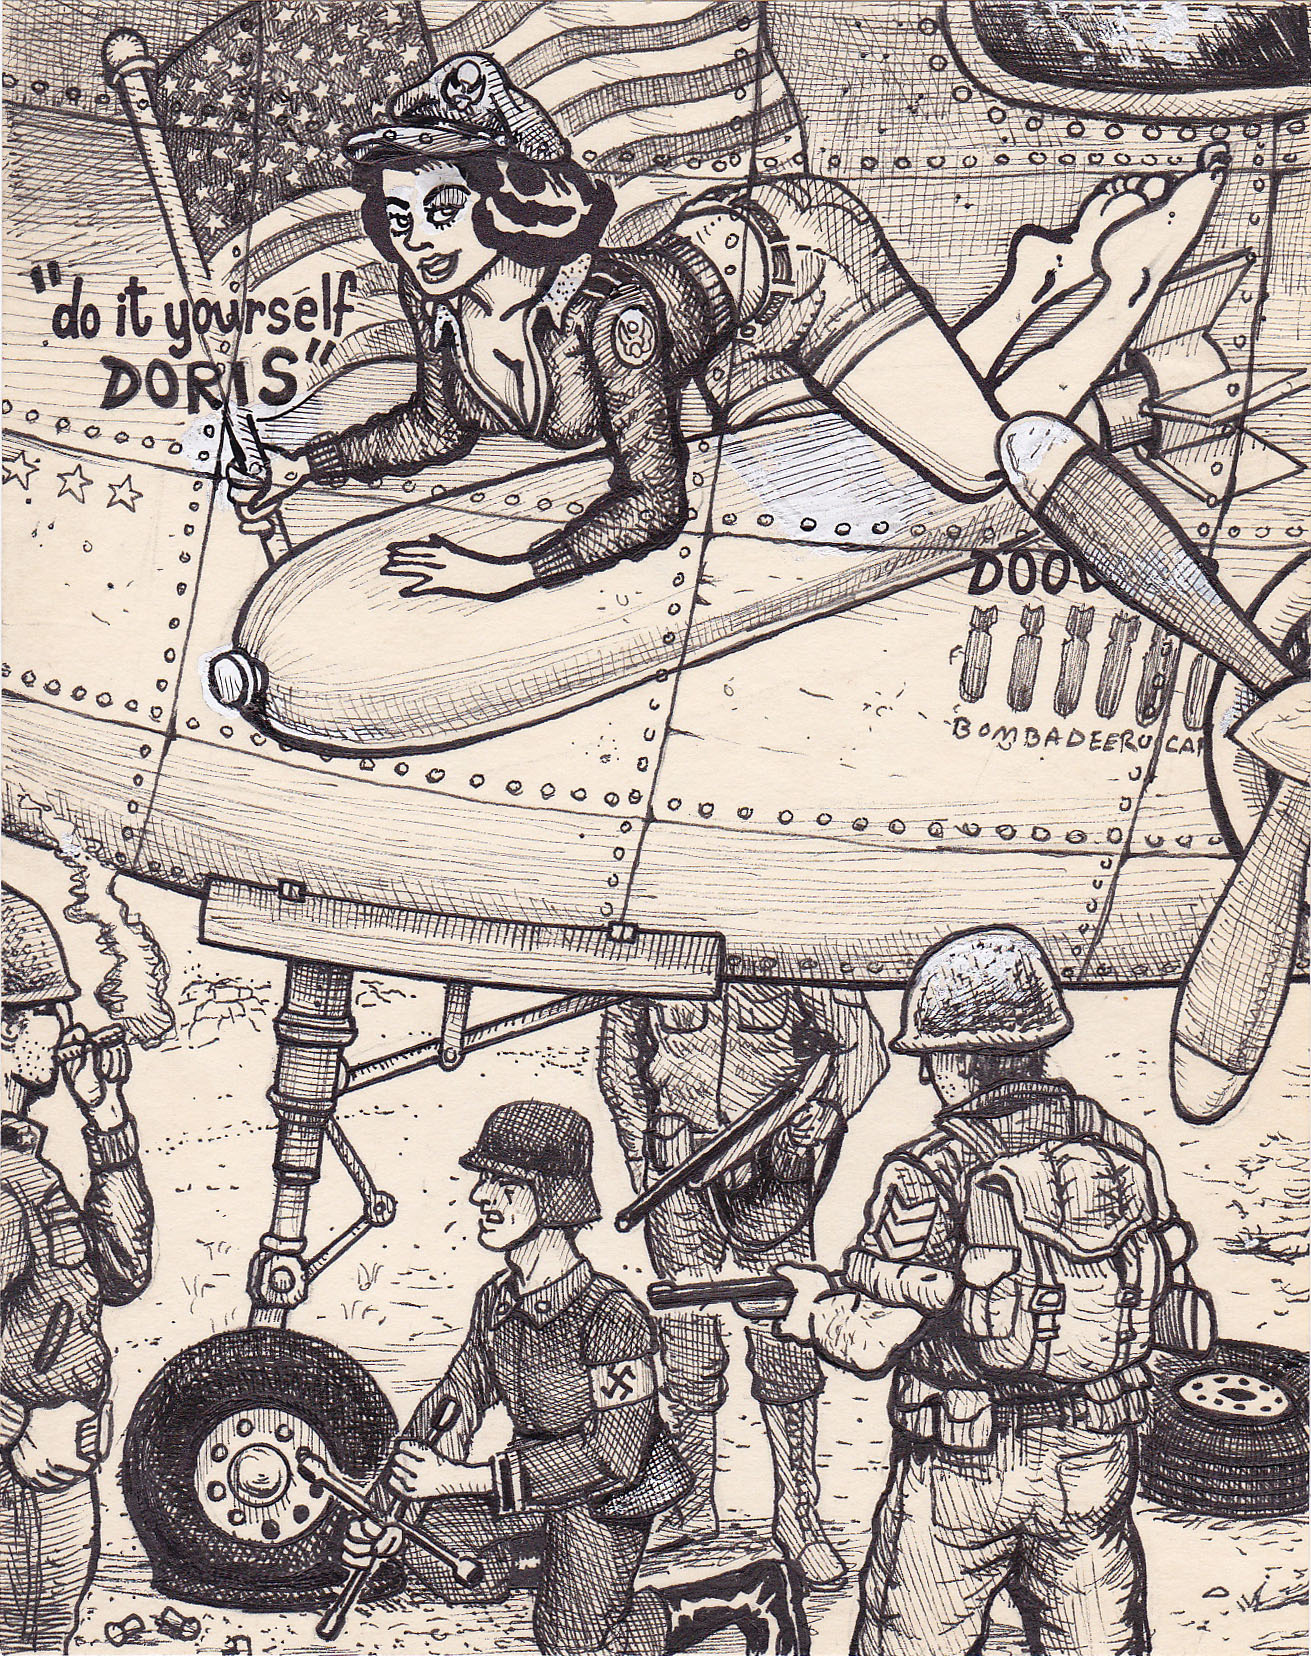 Diyd25bomber doodle pad art by david jablow diyd25bomber solutioingenieria Image collections